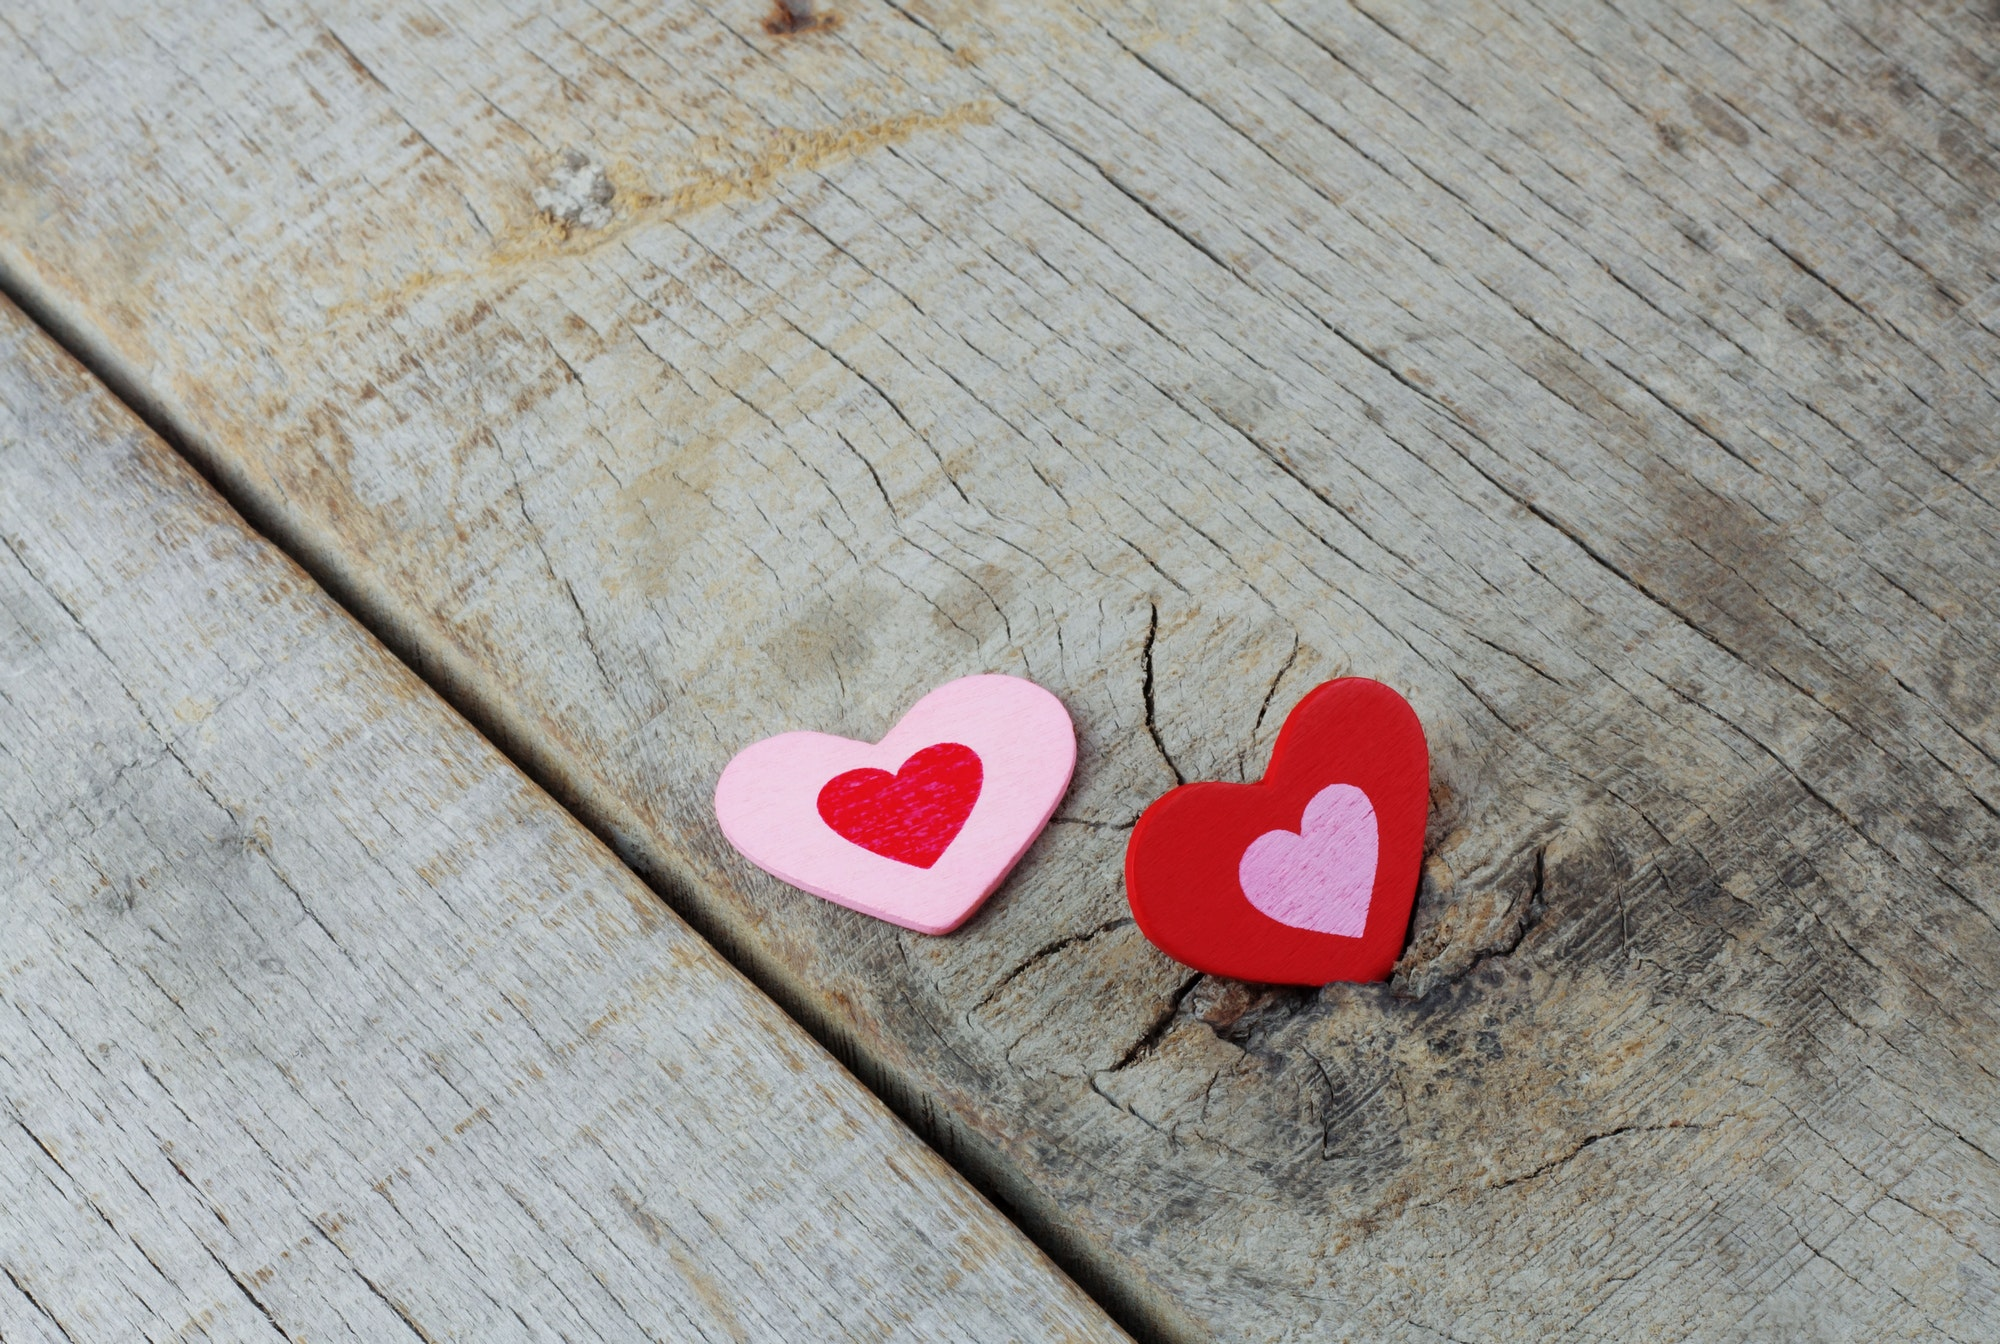 Hearts on wooden floor